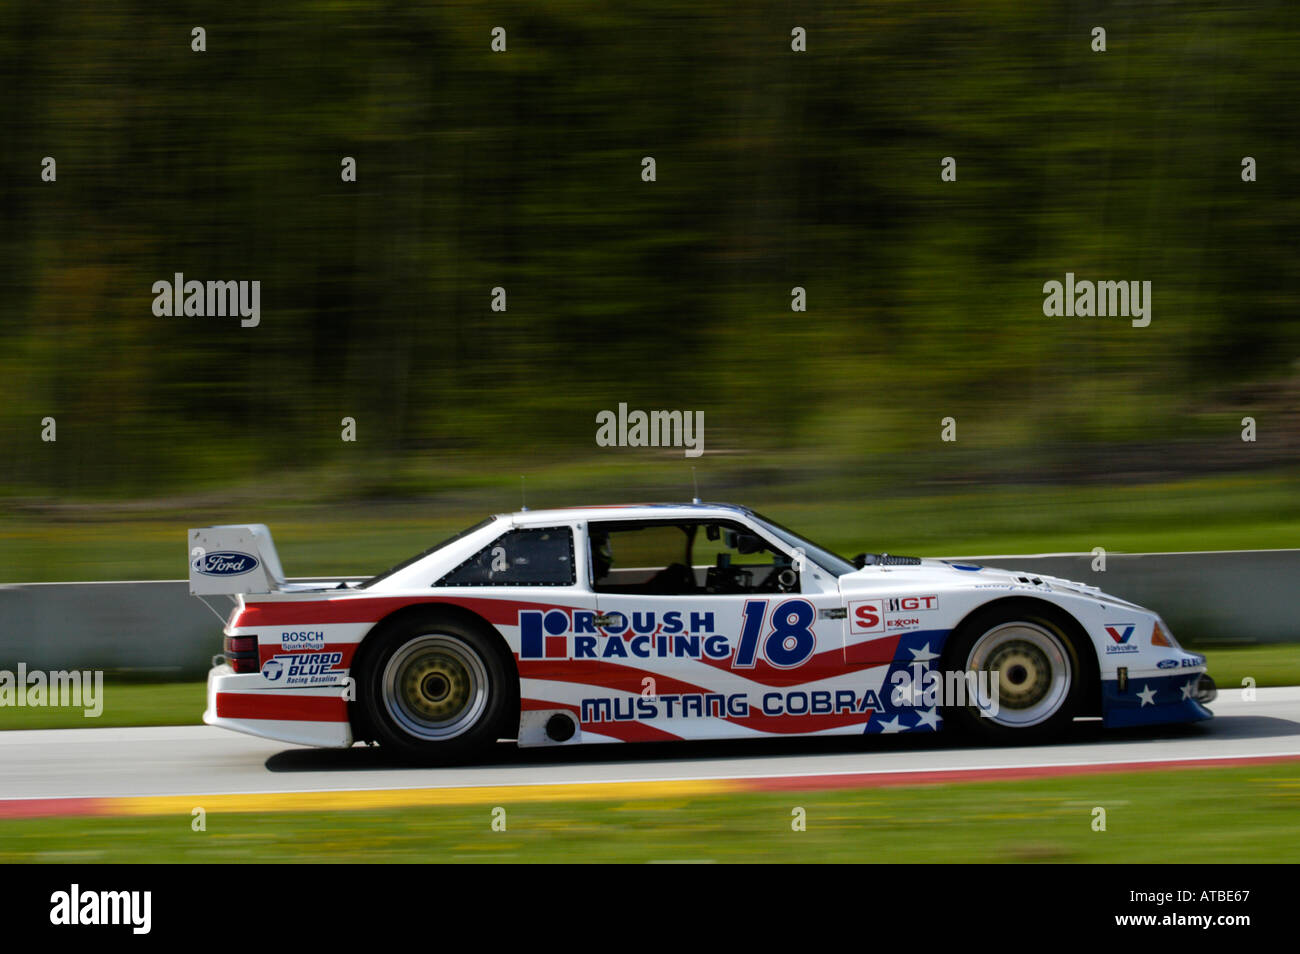 Peter Klutt races the Hartwig Team 1990 Mustang Trans Am car at ...